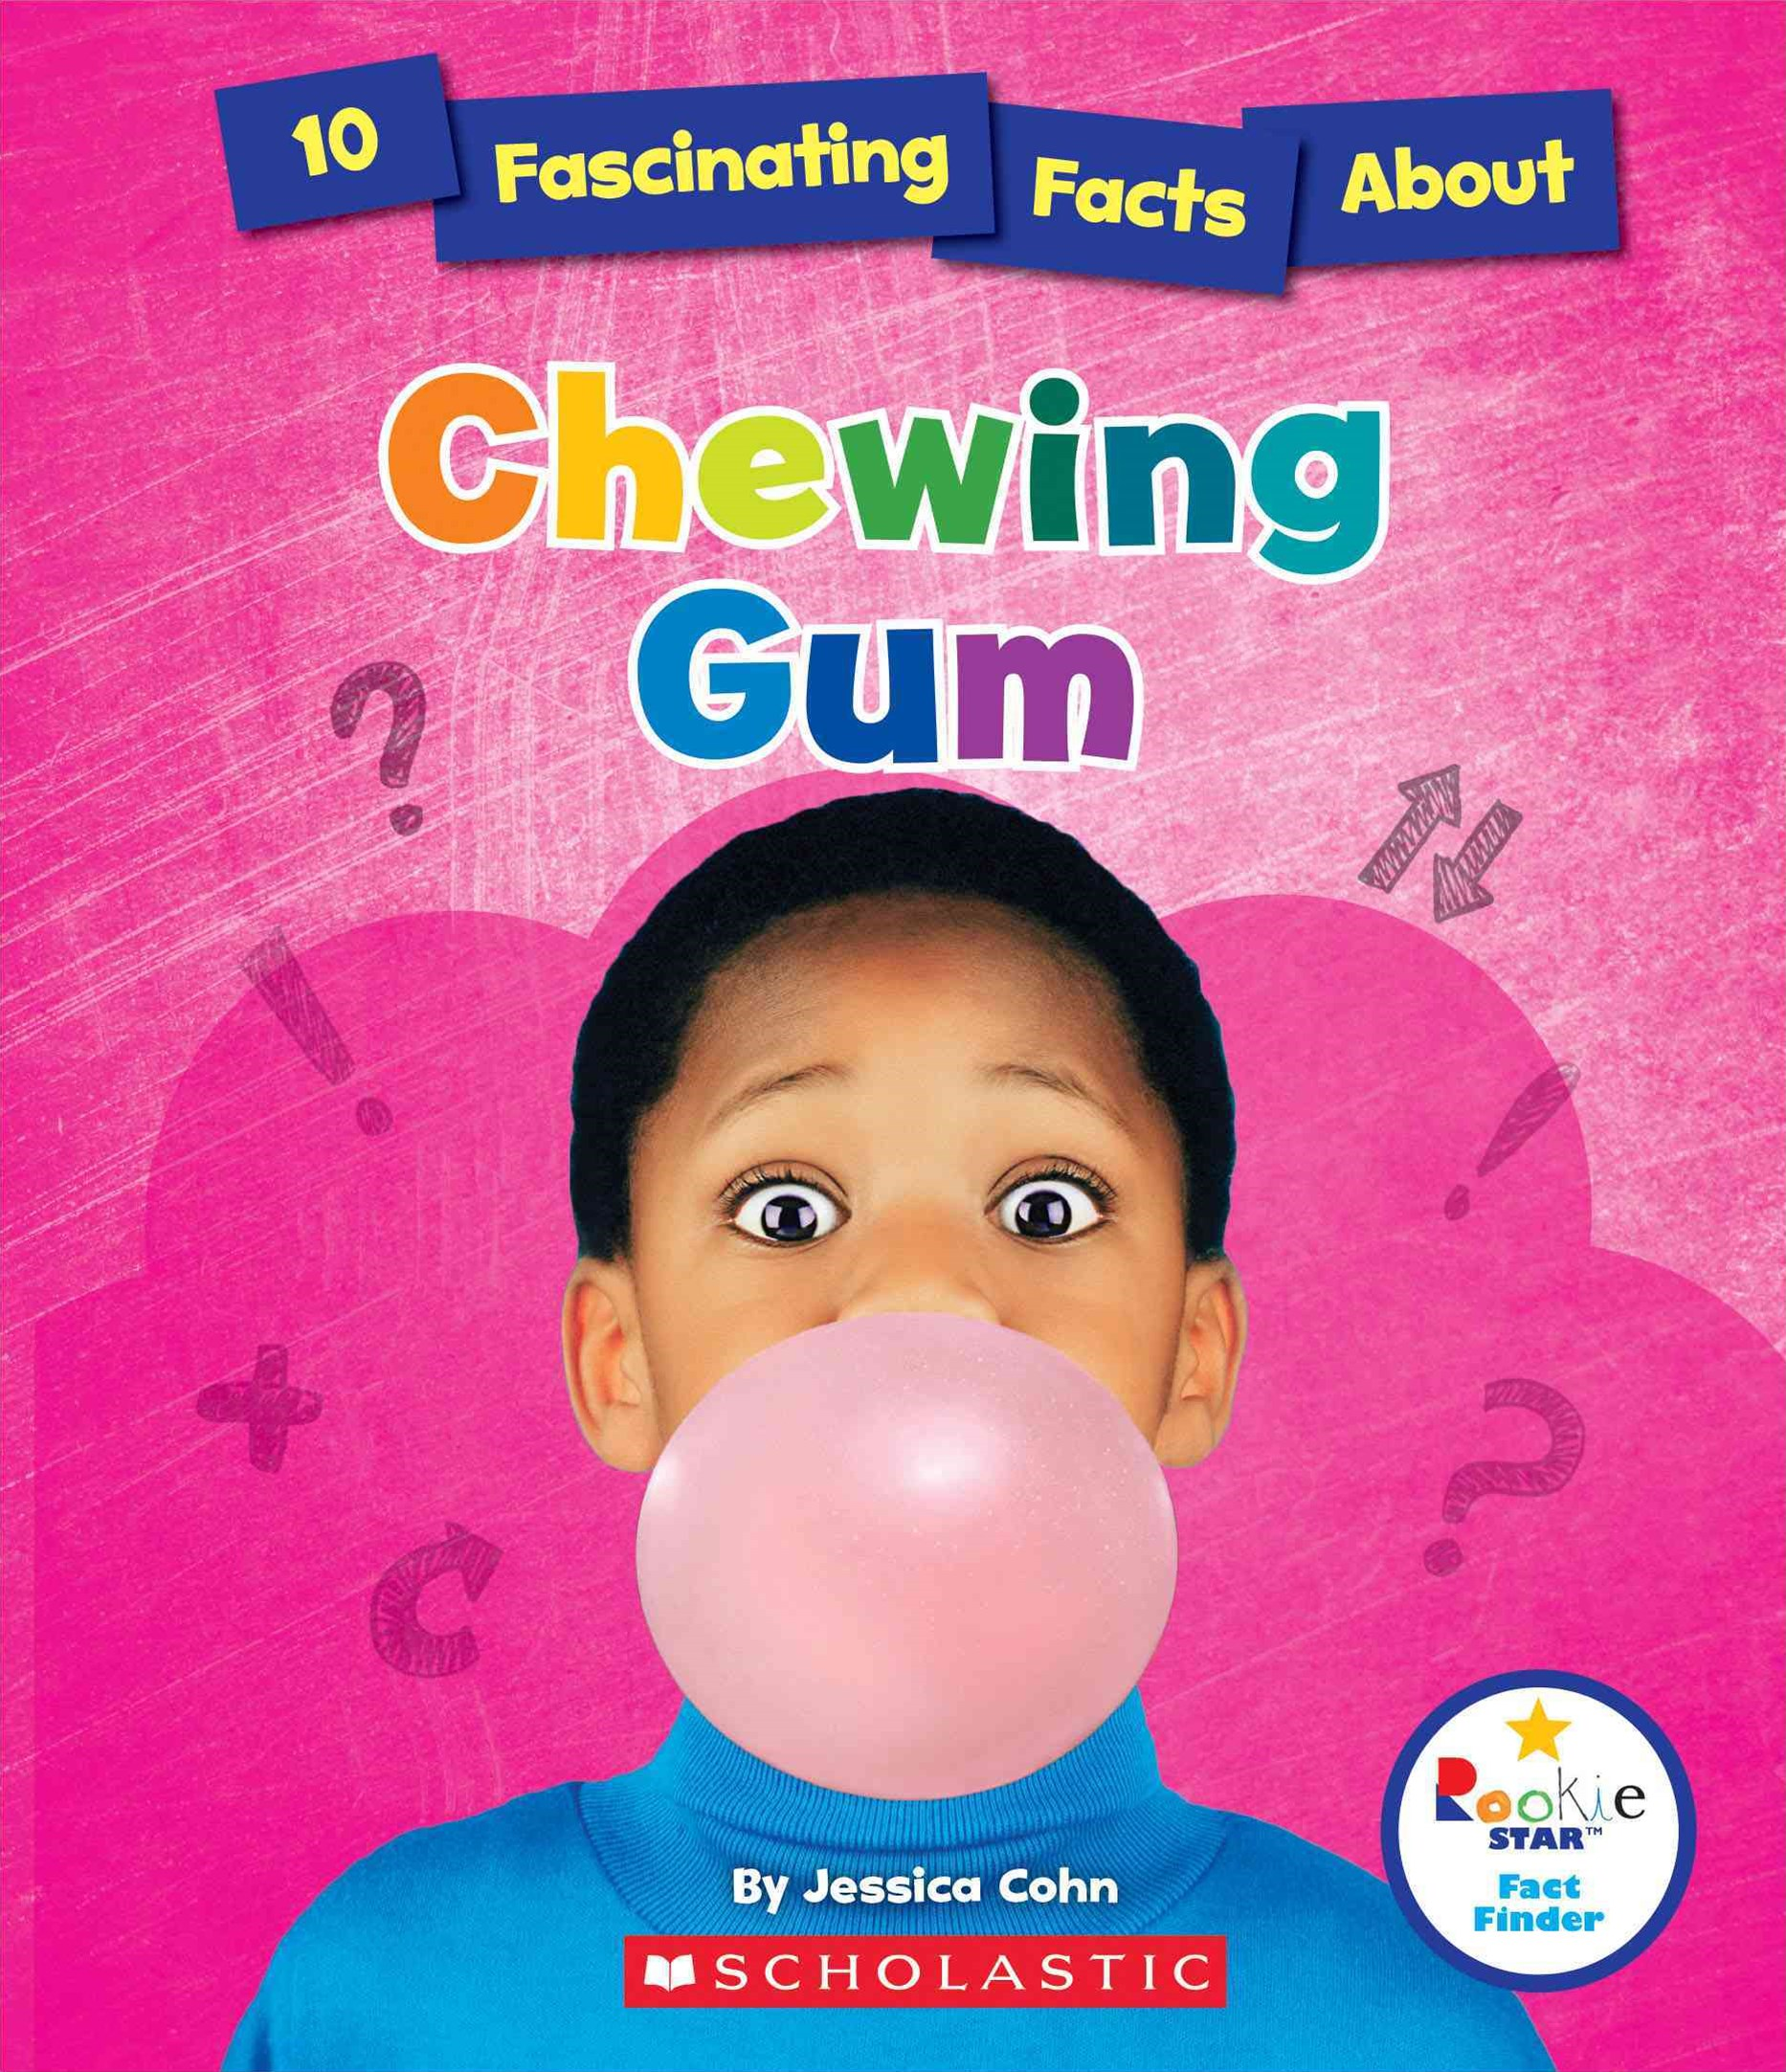 10 Fascinating Facts about Chewing Gum